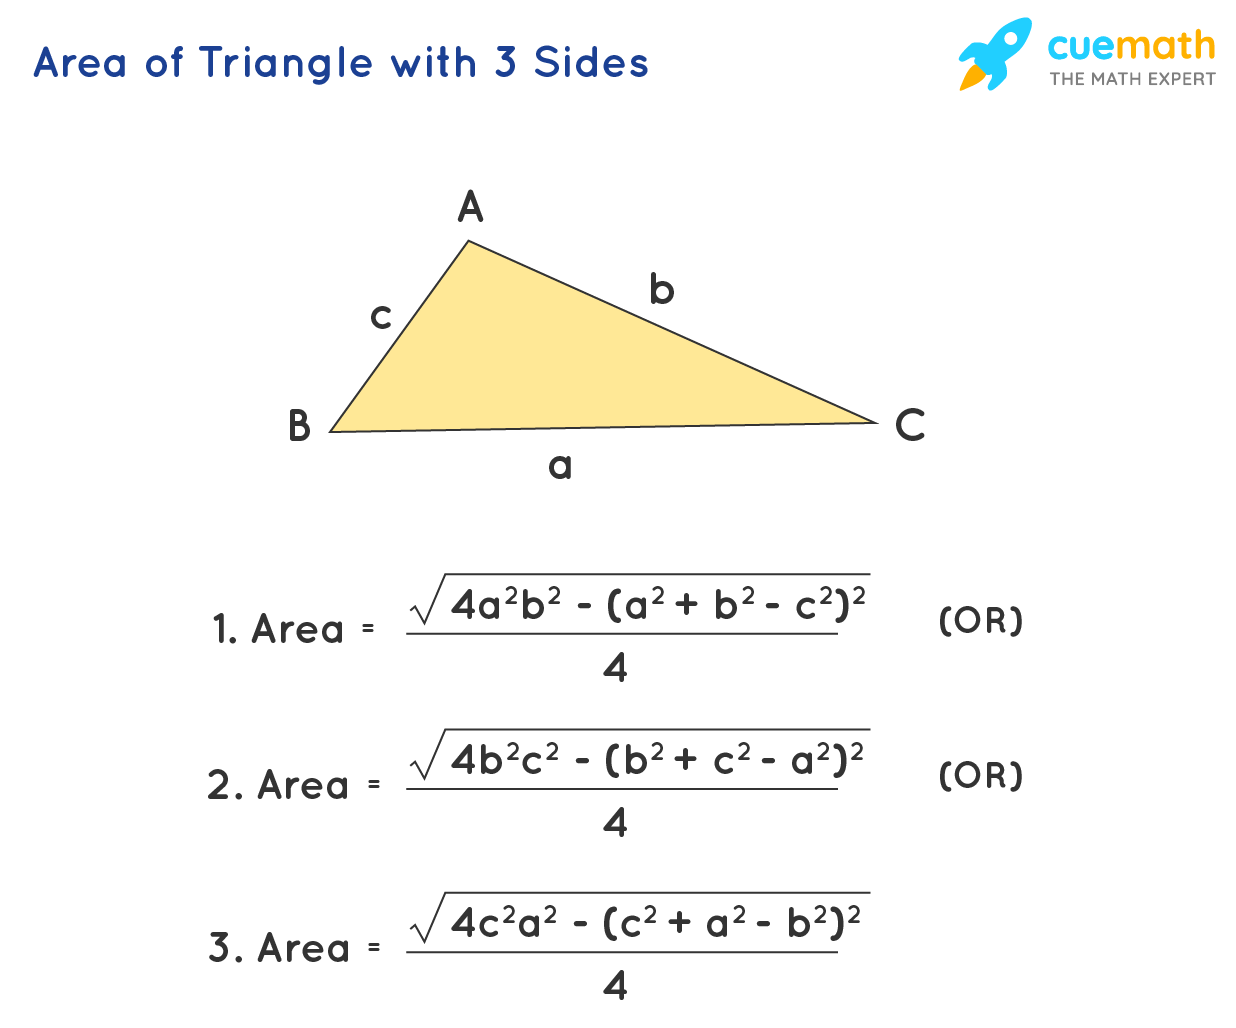 Area of triangle with 3 sides formulas